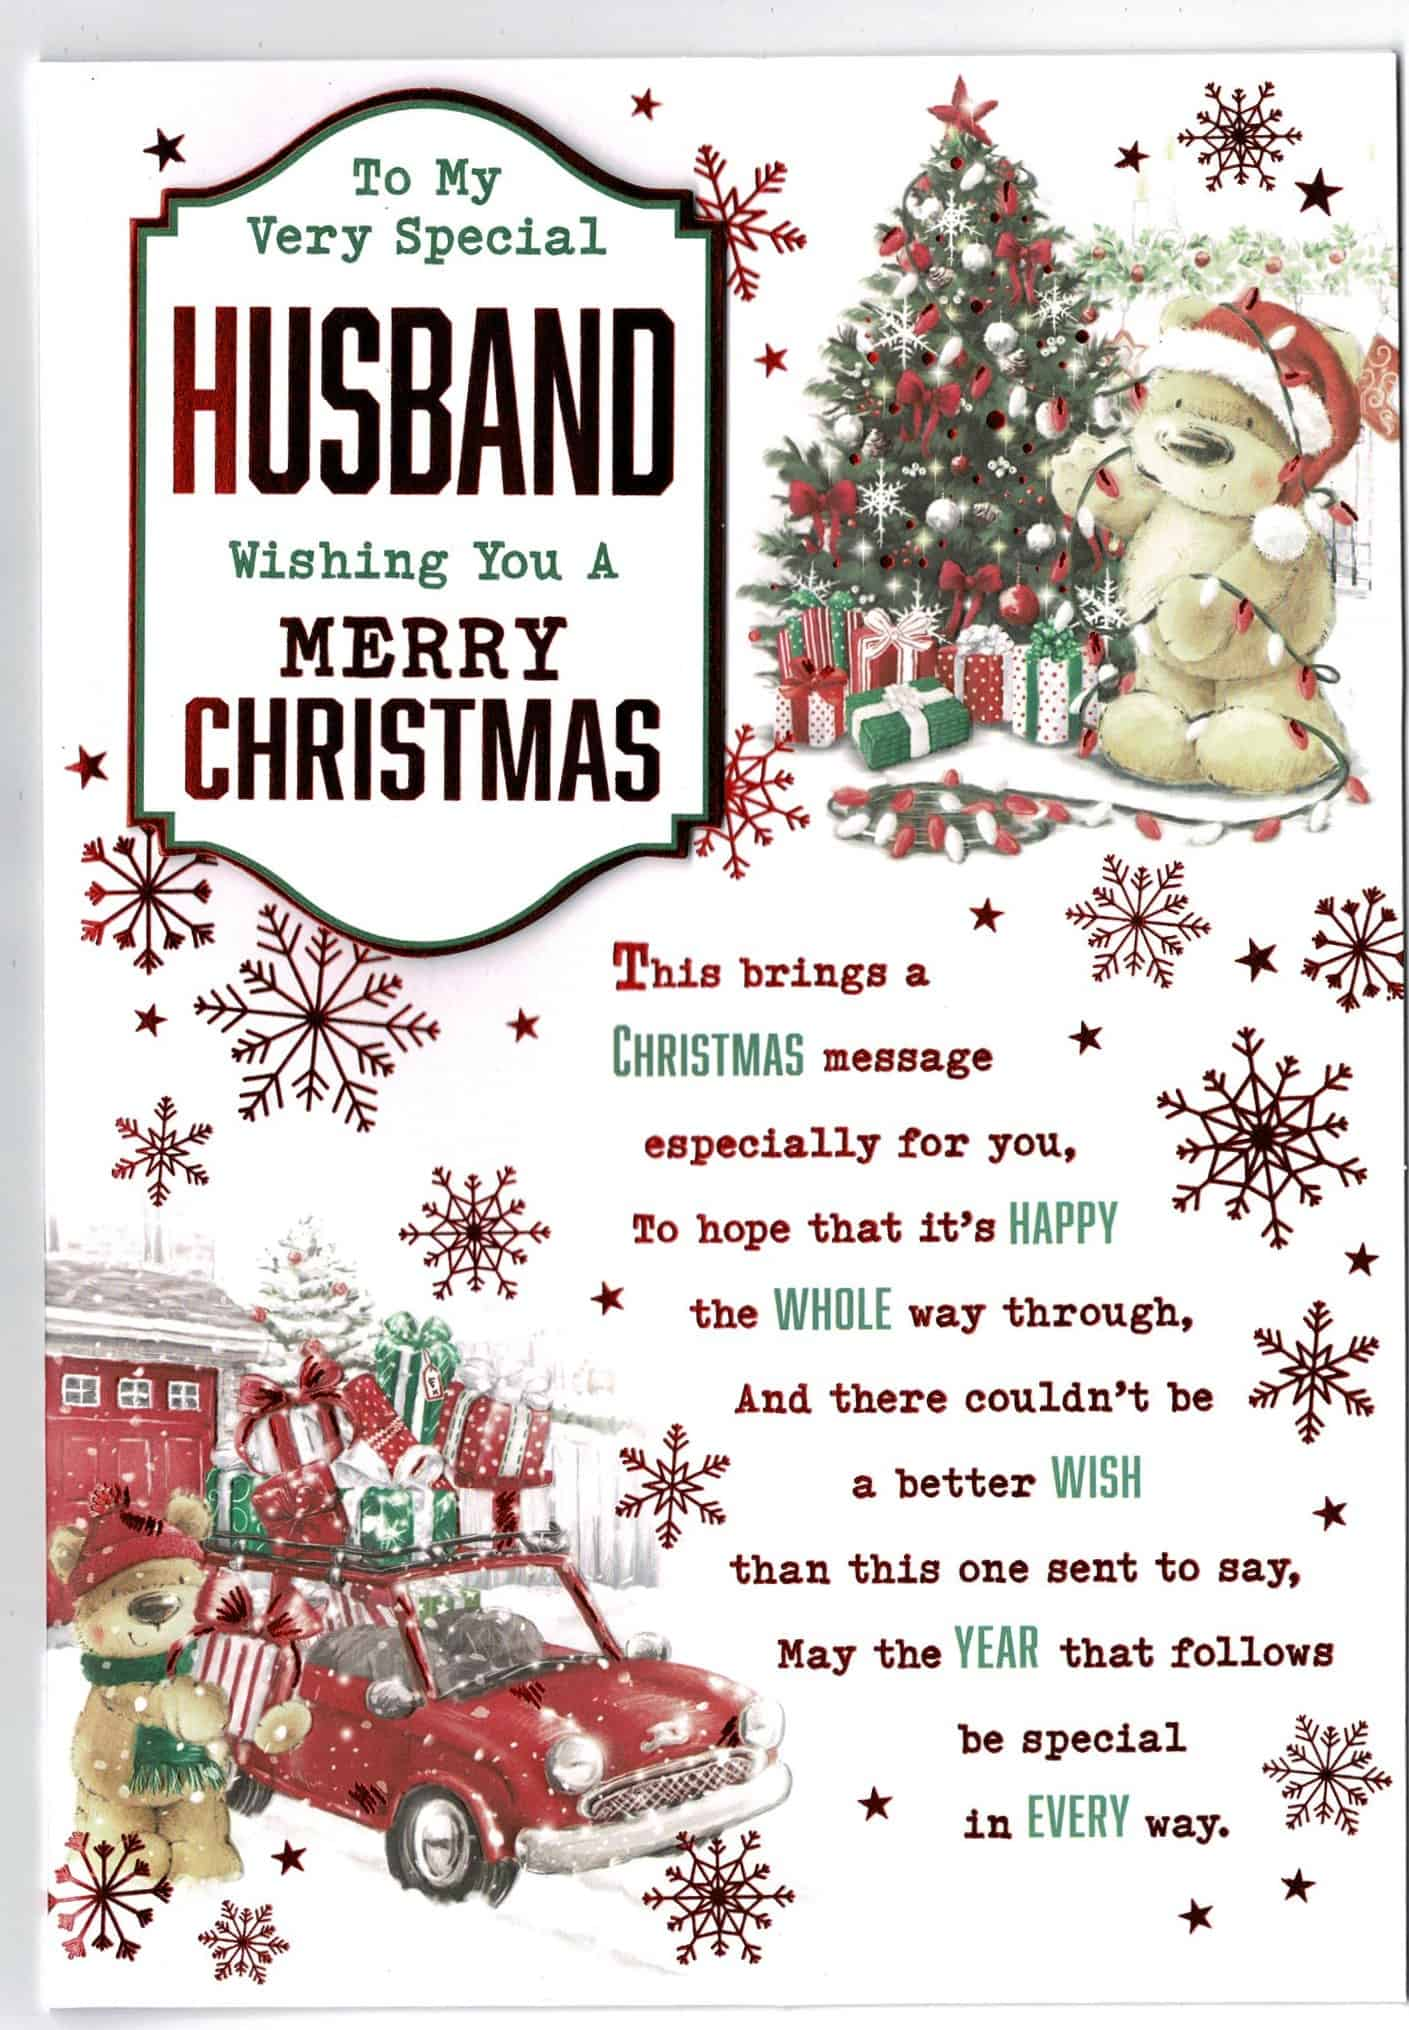 husband christmas card with teddy bear and sentiment verse